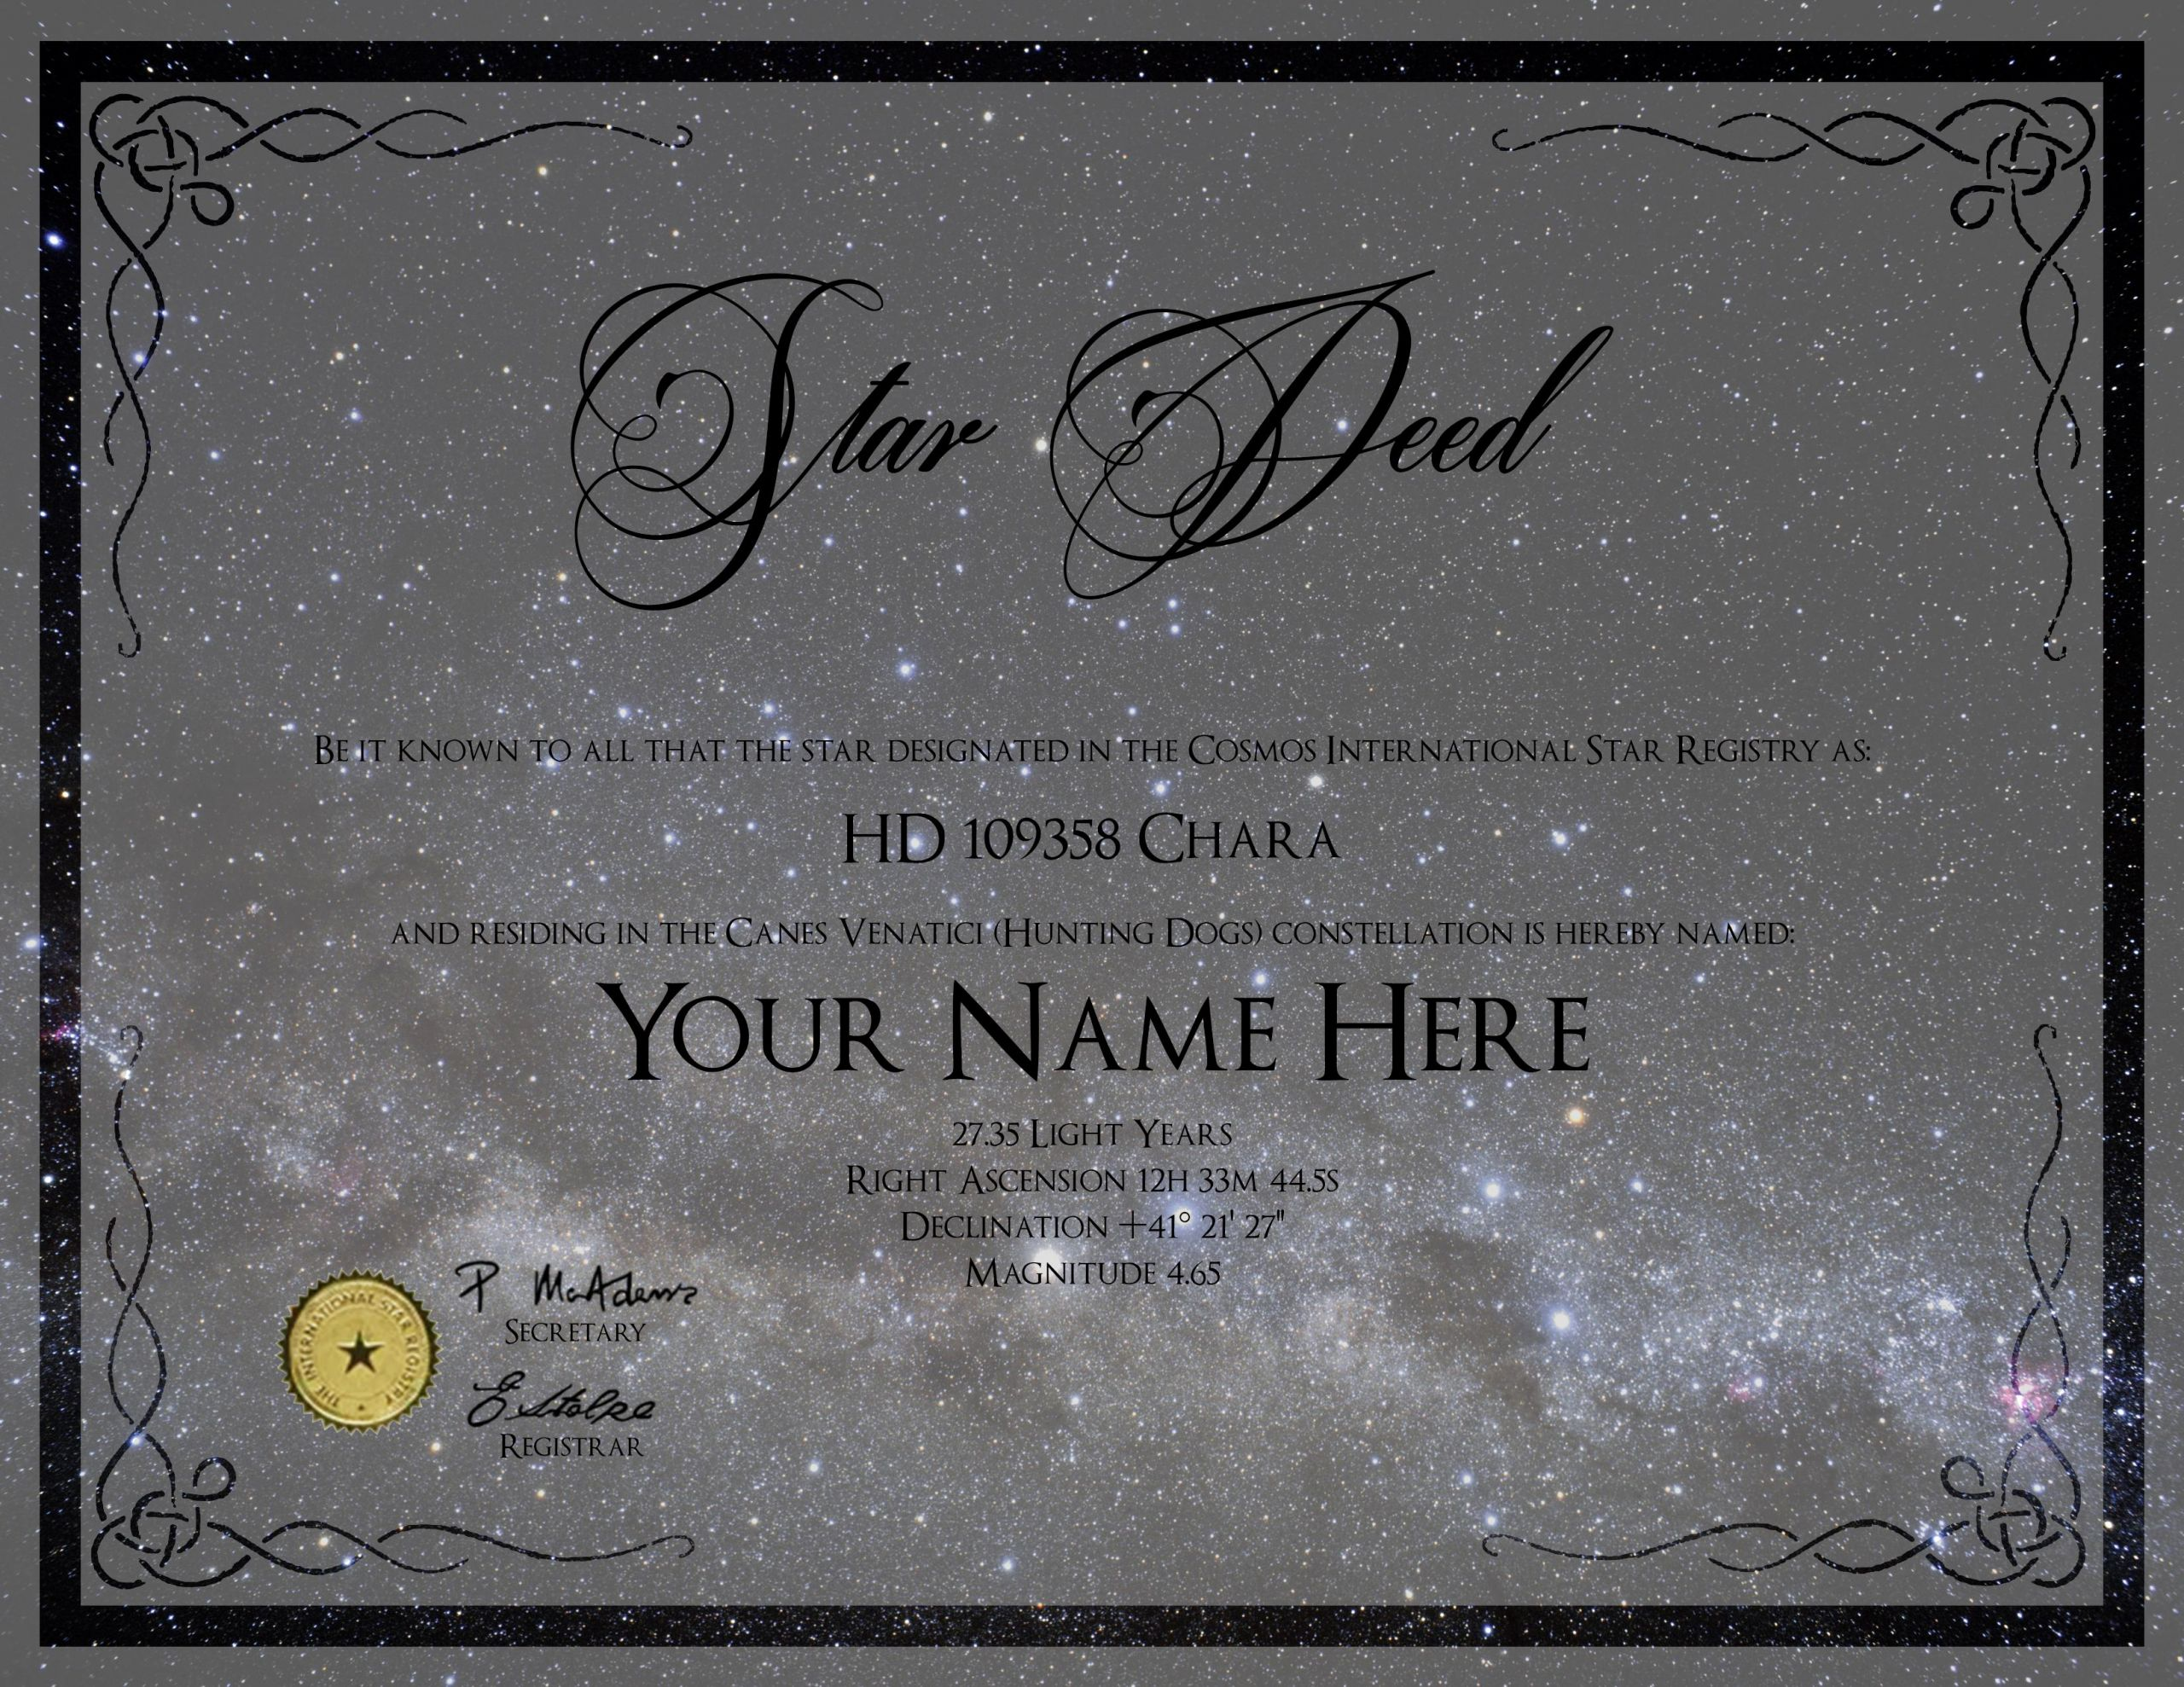 Name A Star Certificate Template Lovely It Probably Cost Him 50 Bucks and She Was so Happy